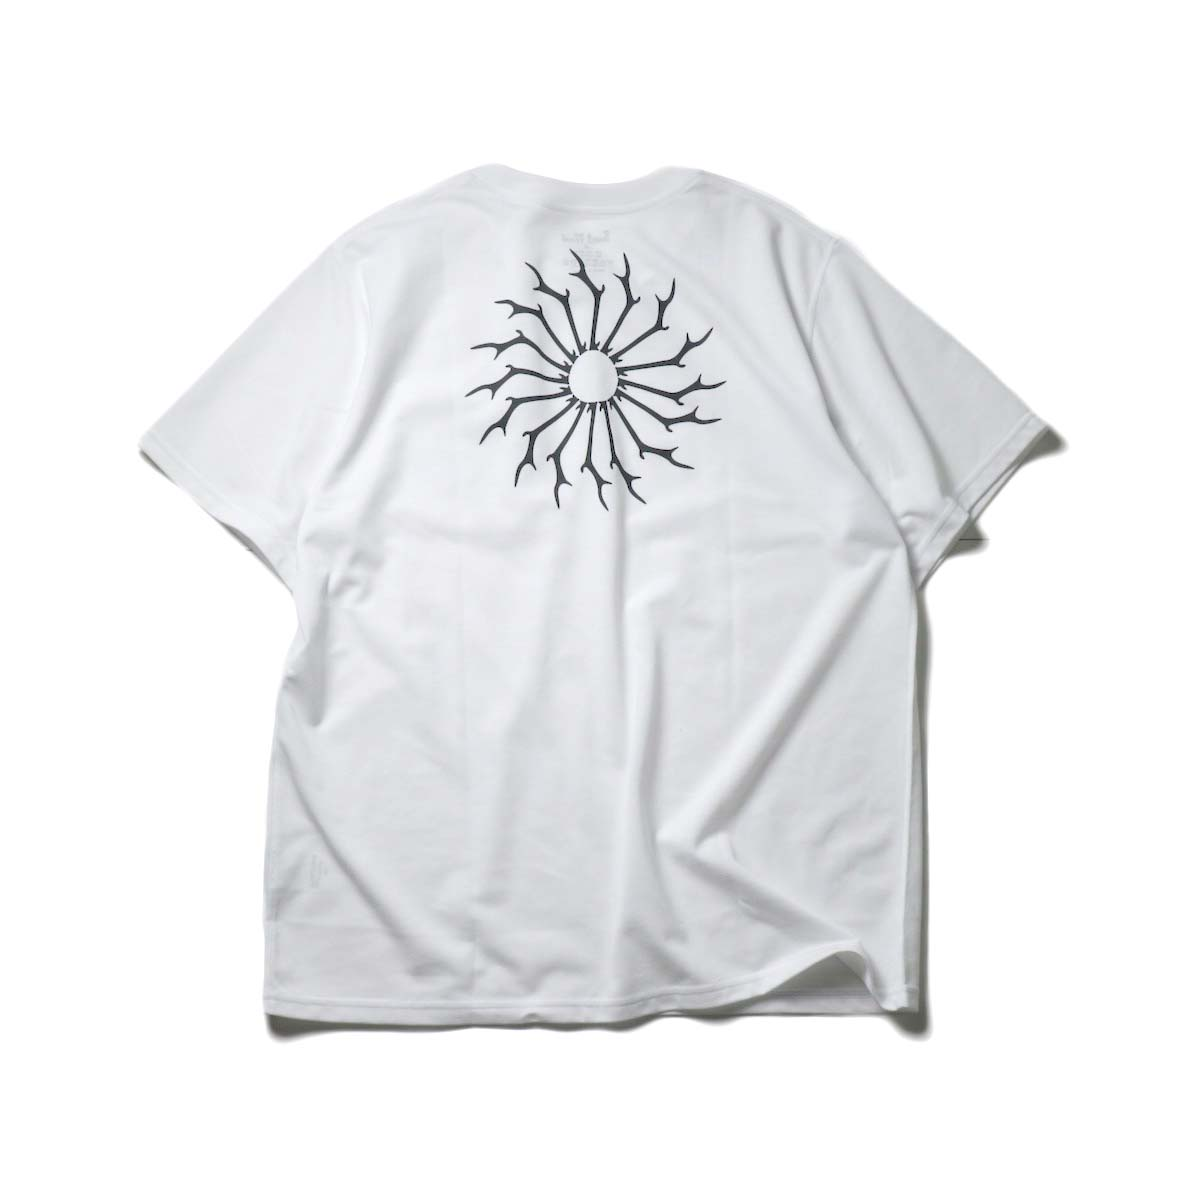 South2 West8 / S/S ROUND POCKET TEE - CIRCLE HORN (White)